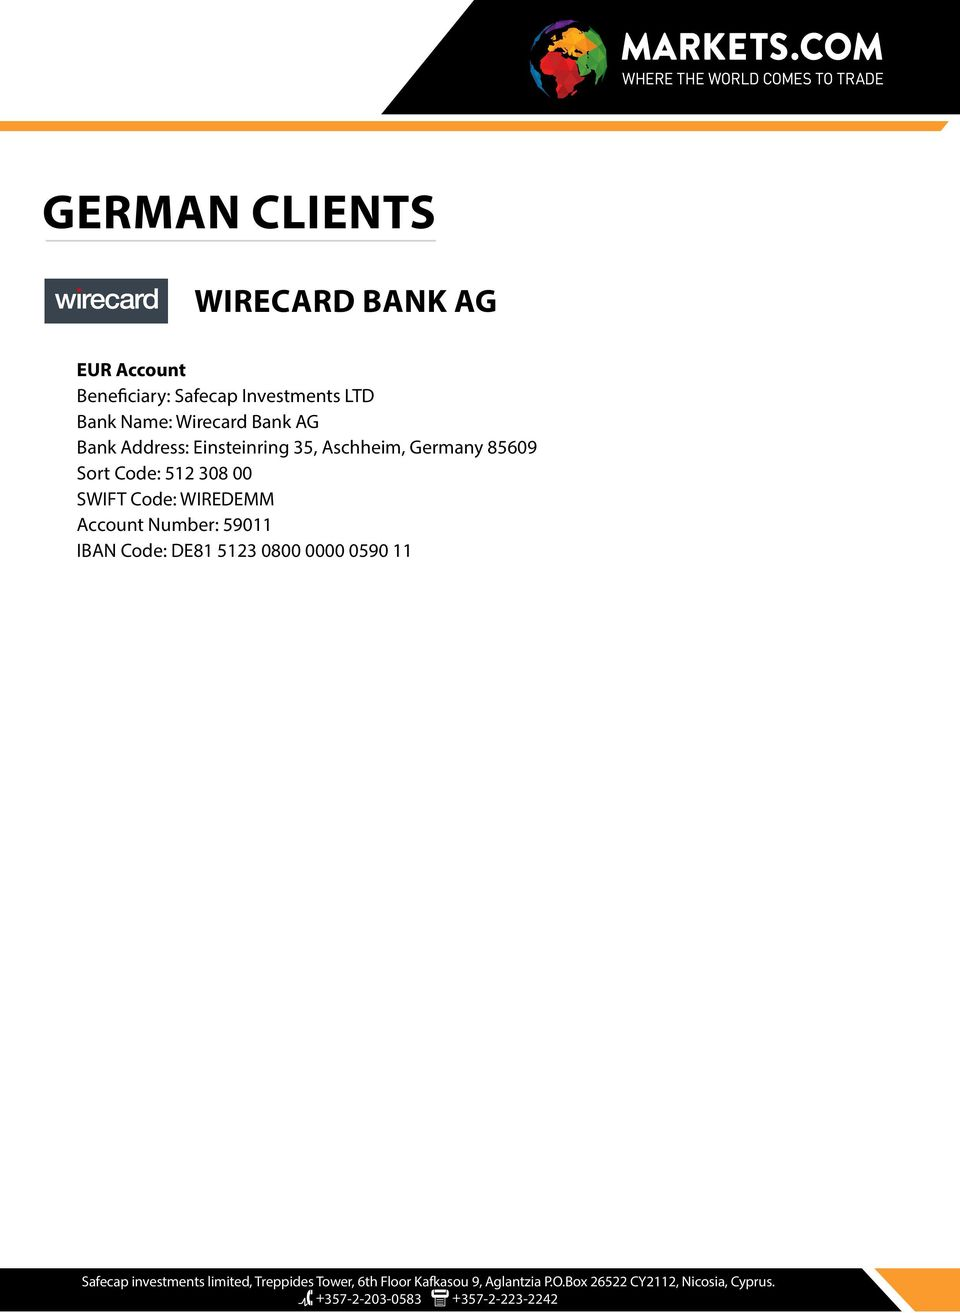 Wirecard Bank Ag Routing Number